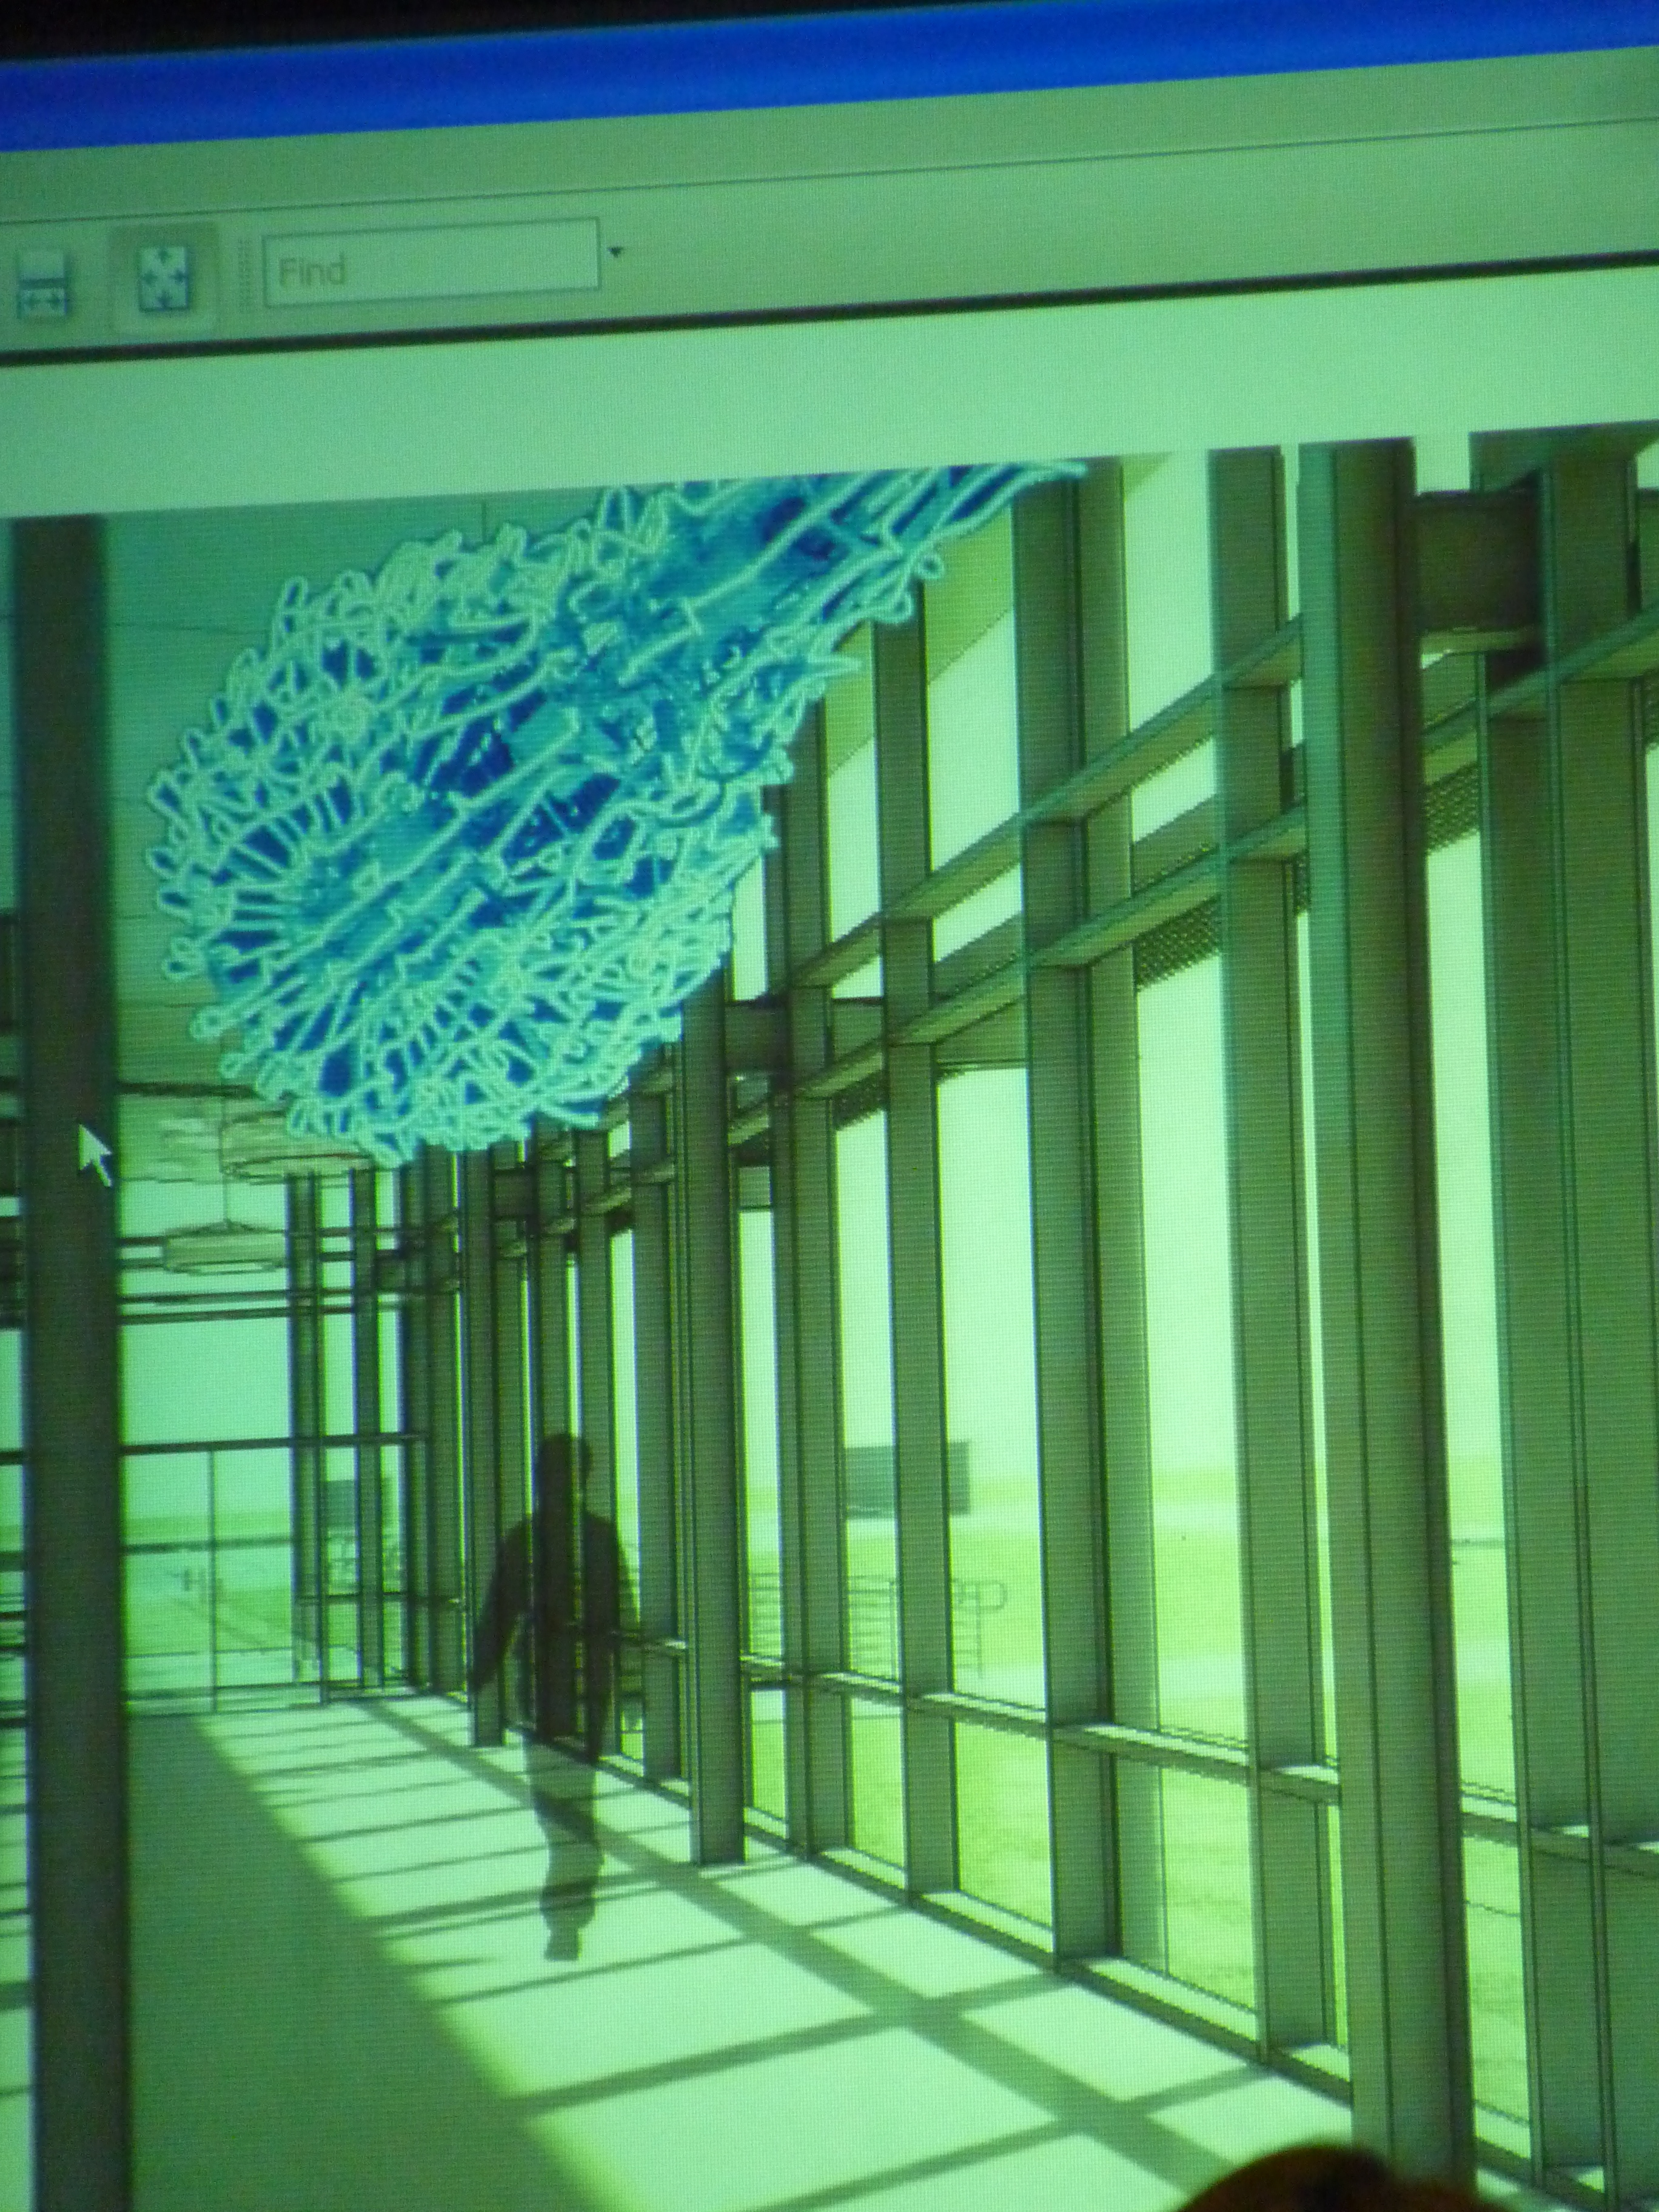 Tristan Lowe proposed installation